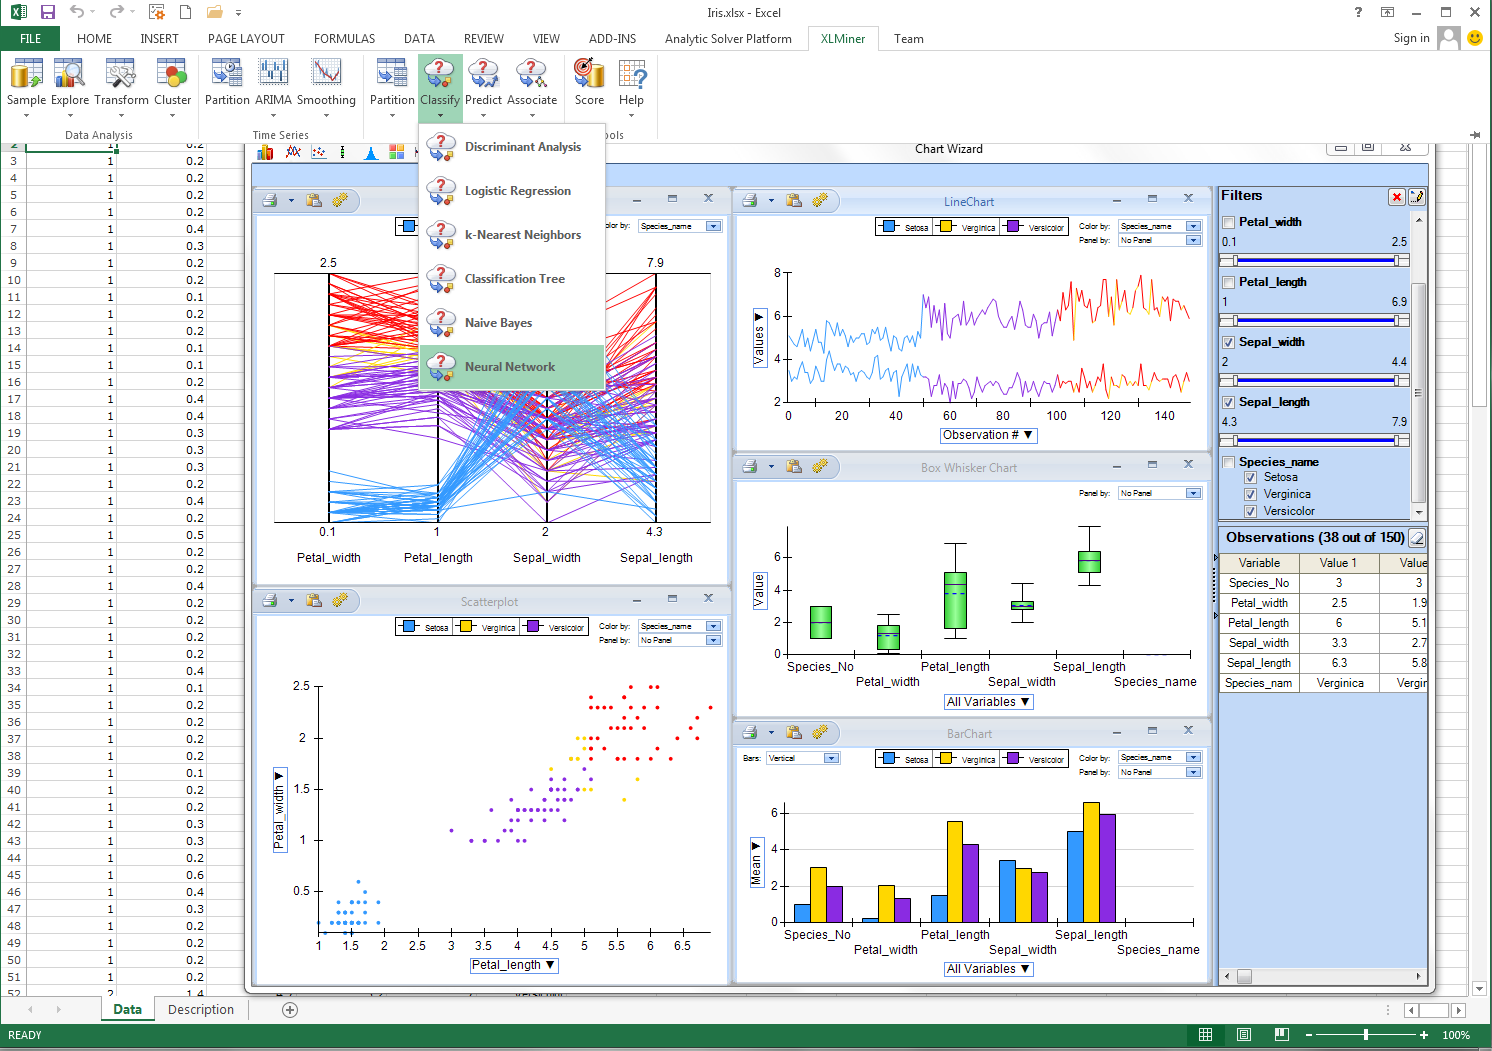 Frontline Systems Introduces Analytic Solver Platform for Excel in